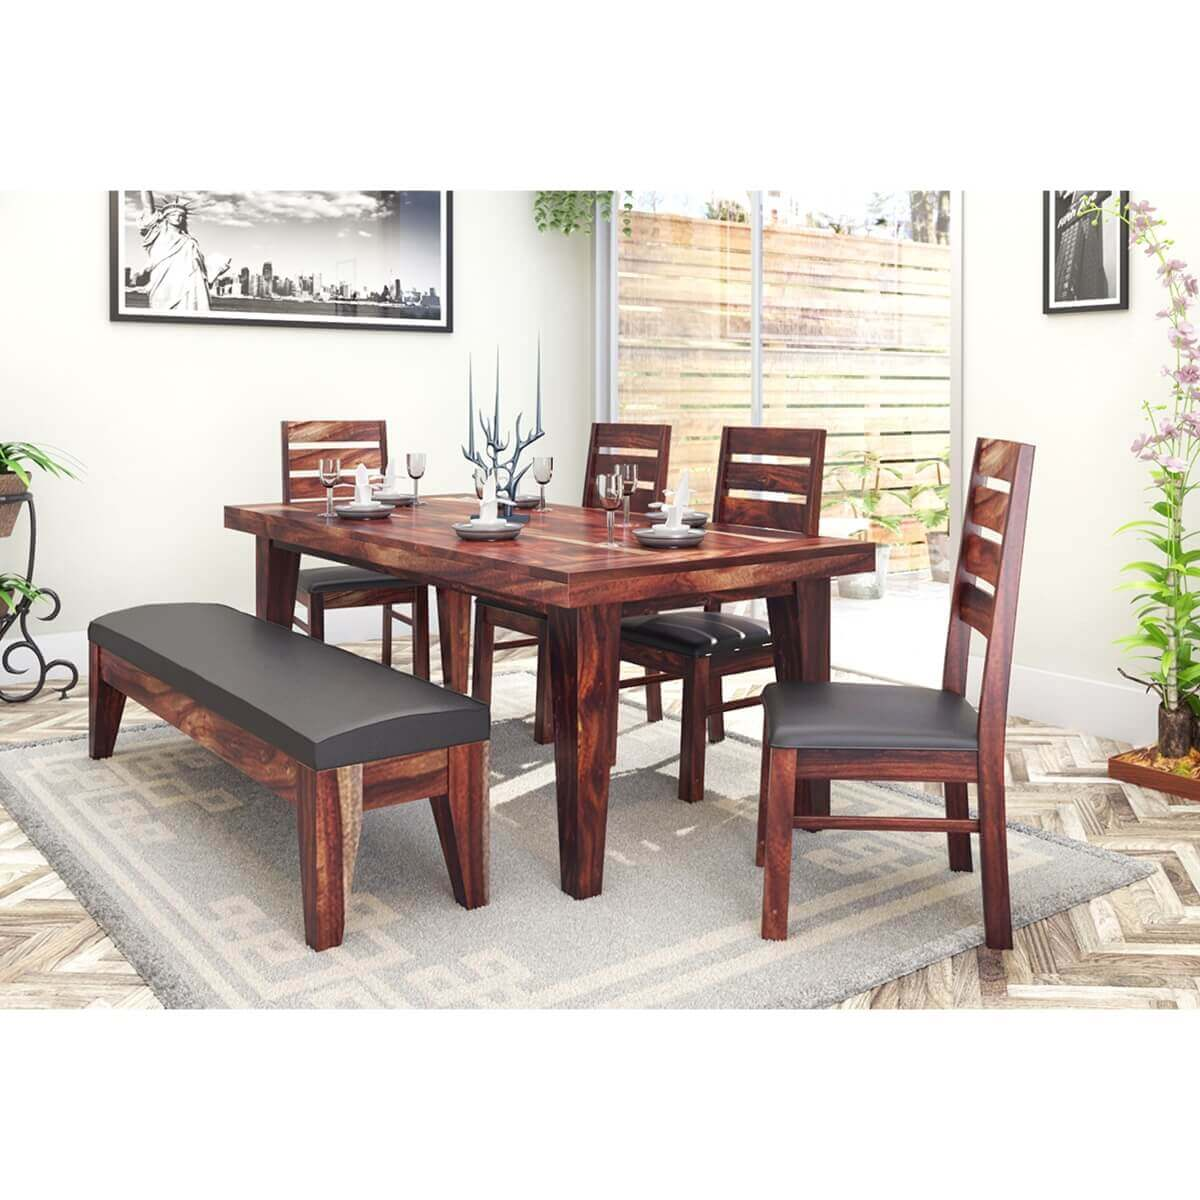 Sienna Large Wooden Rustic Dining Table Chair Set With Bench